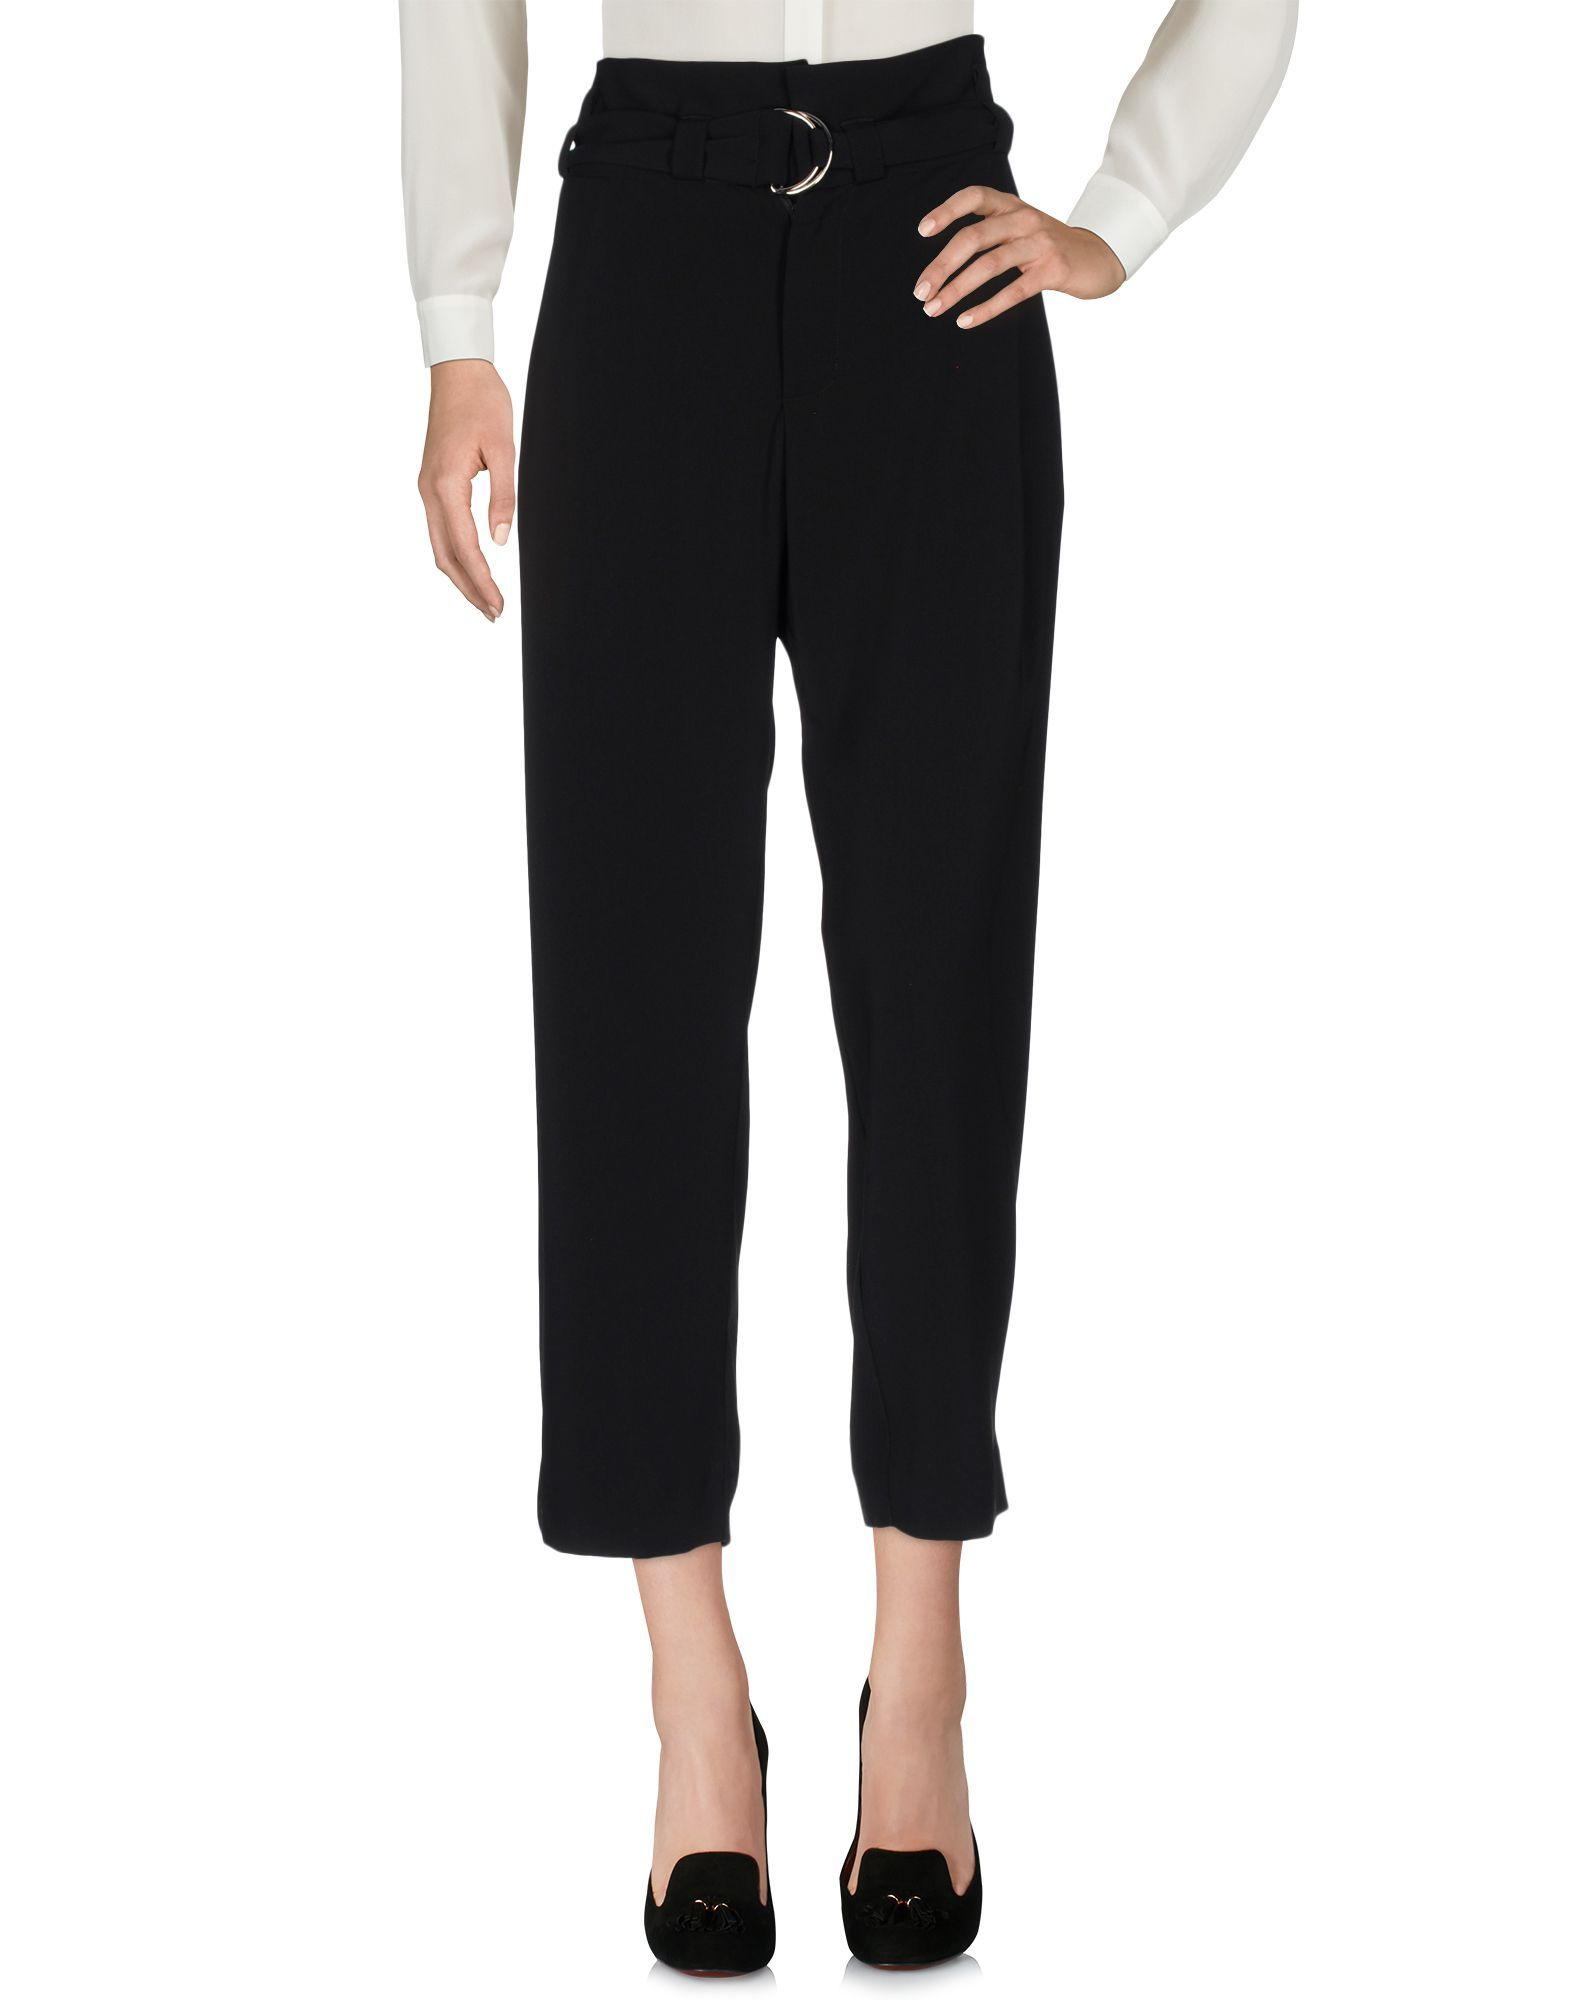 Merci Black Crepe Cropped Trousers